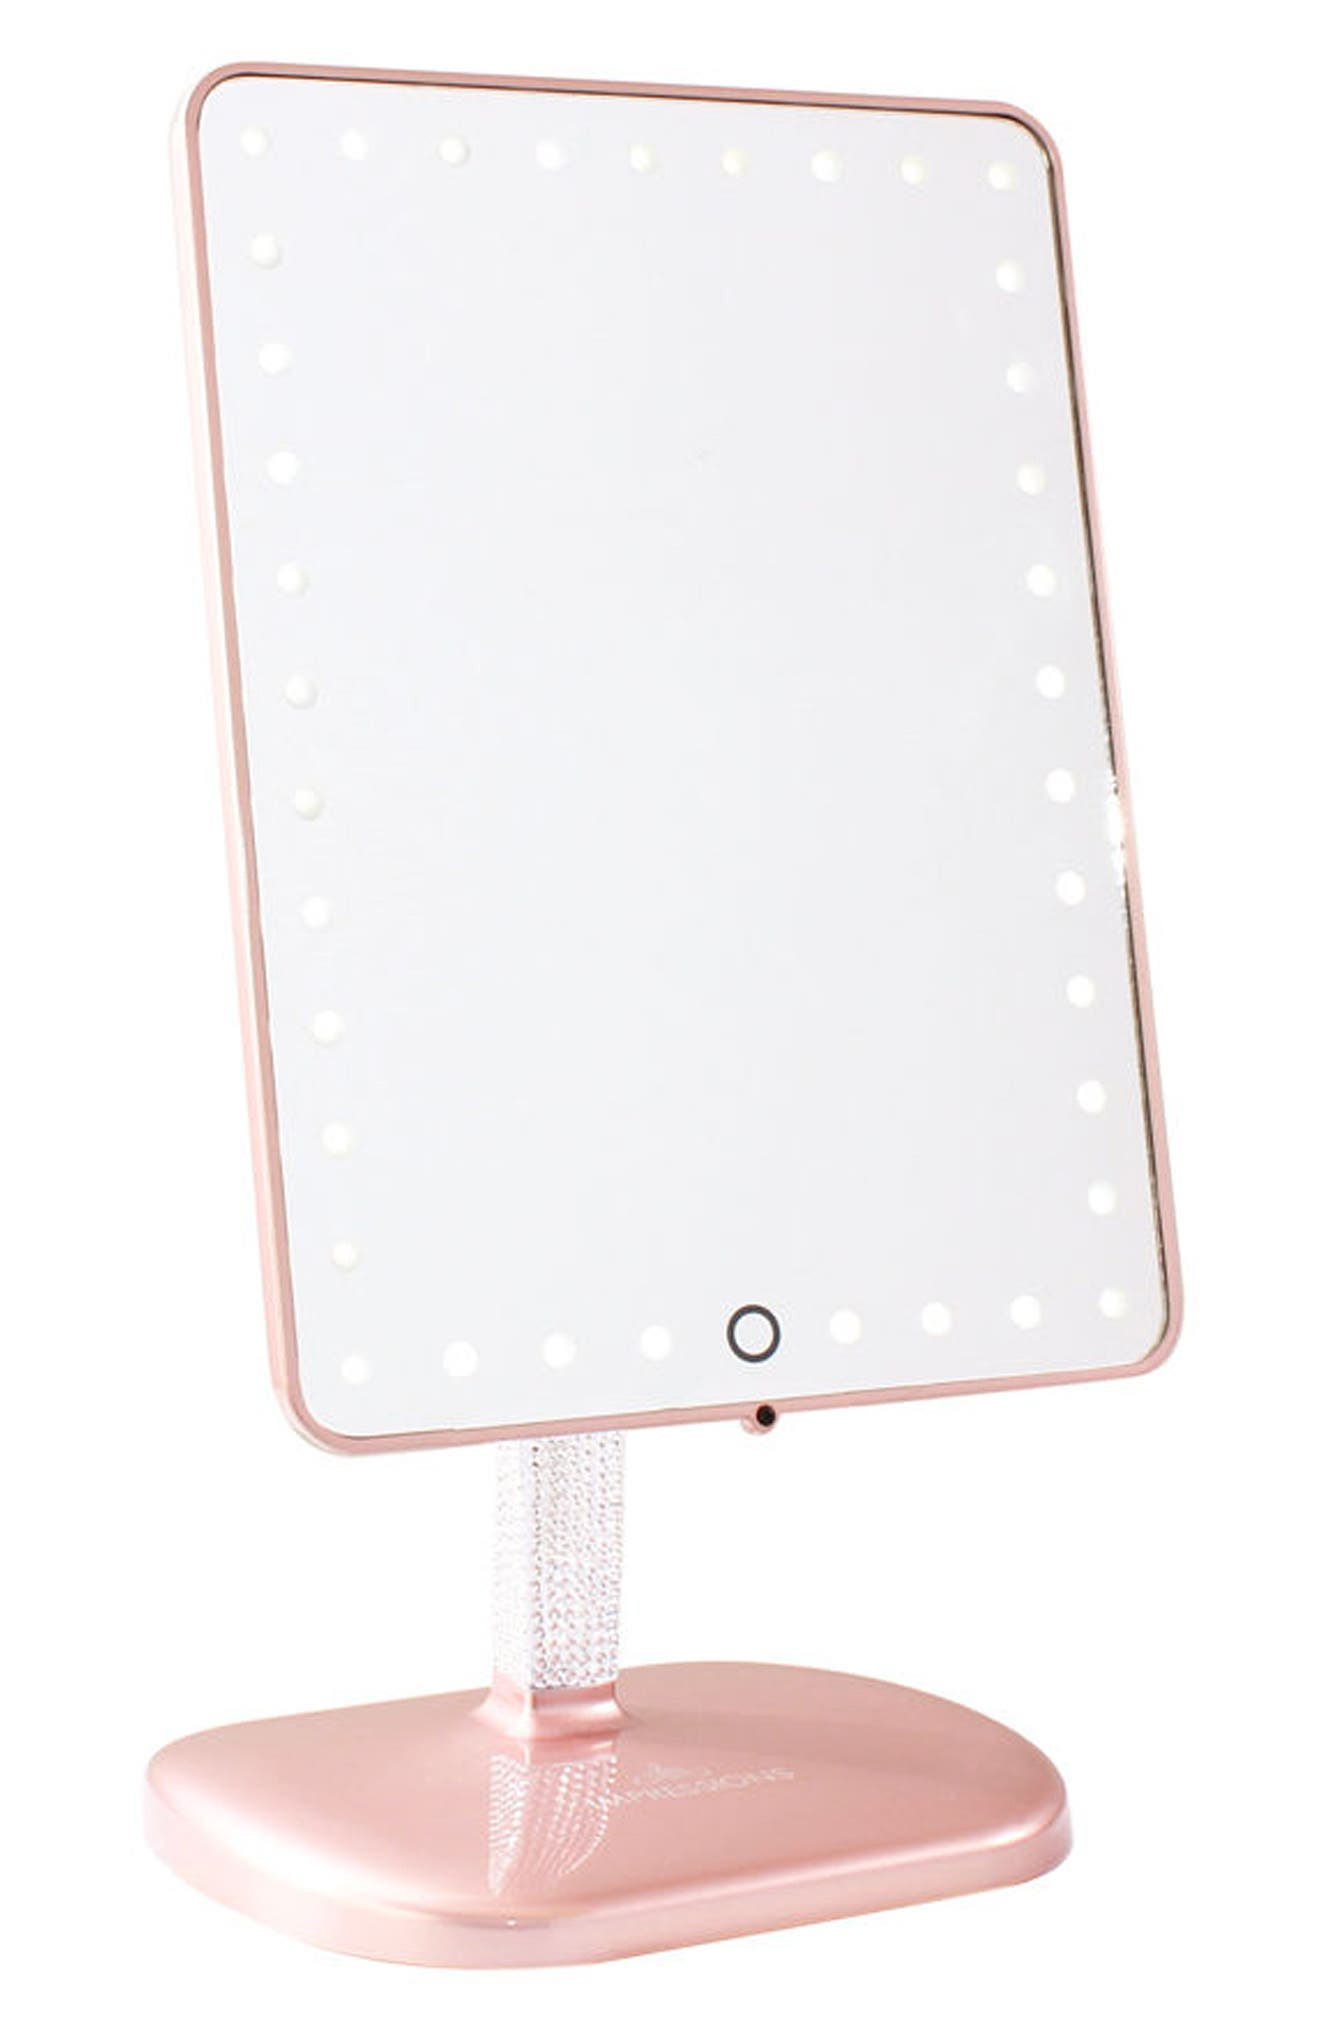 Alternate Image 1 Selected - Impressions Vanity Co. Bling Touch Pro LED Makeup Mirror with Bluetooth® Audio & Speakerphone